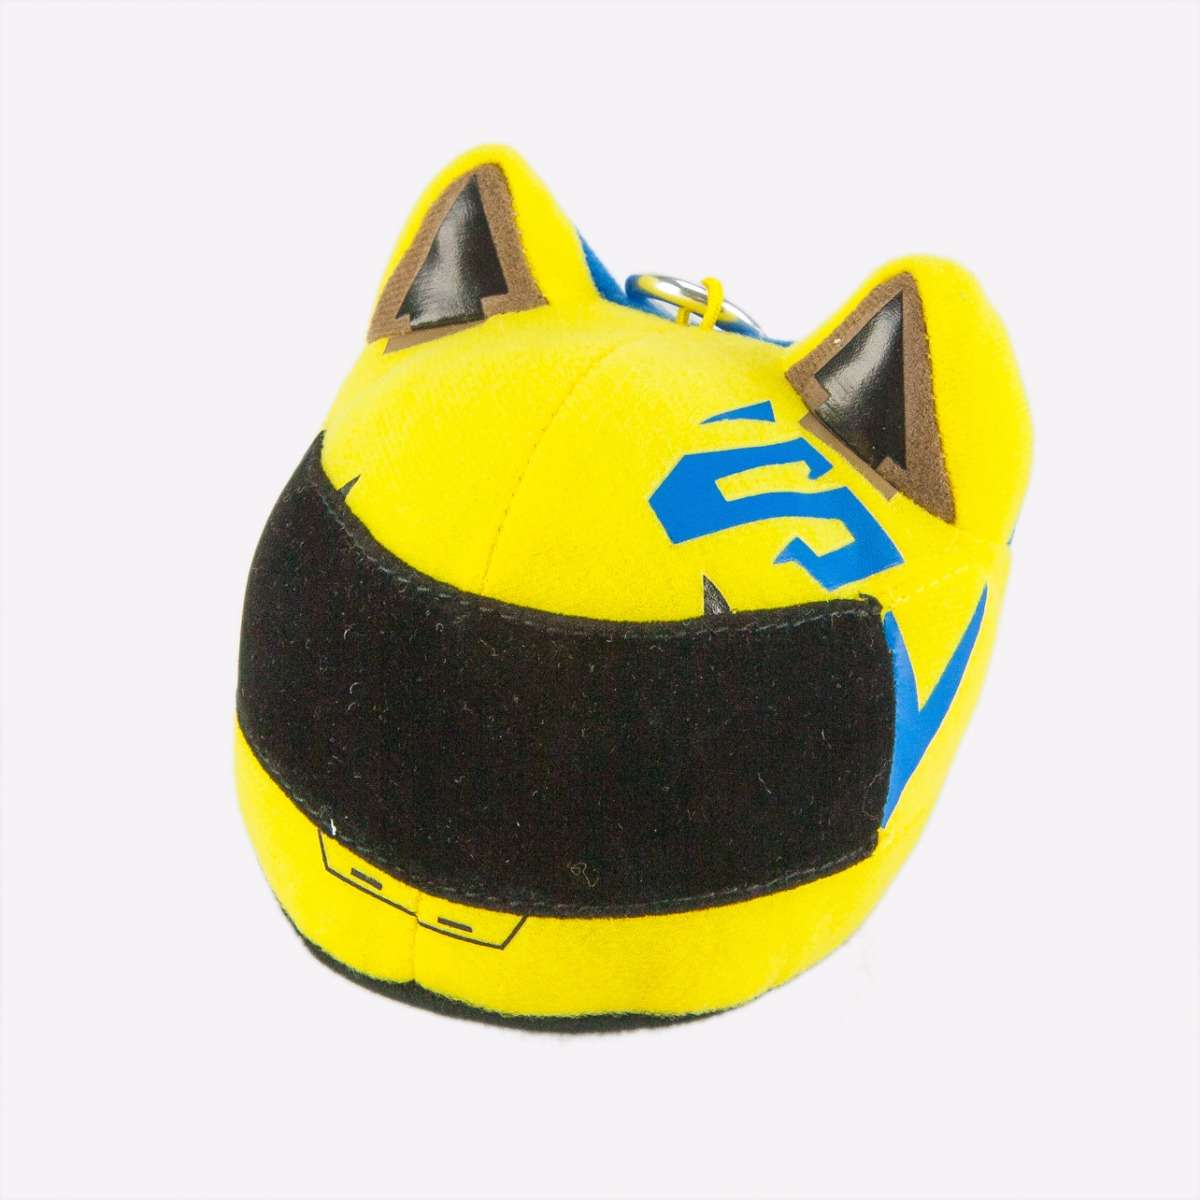 Celty Plush Clip Toys & Games